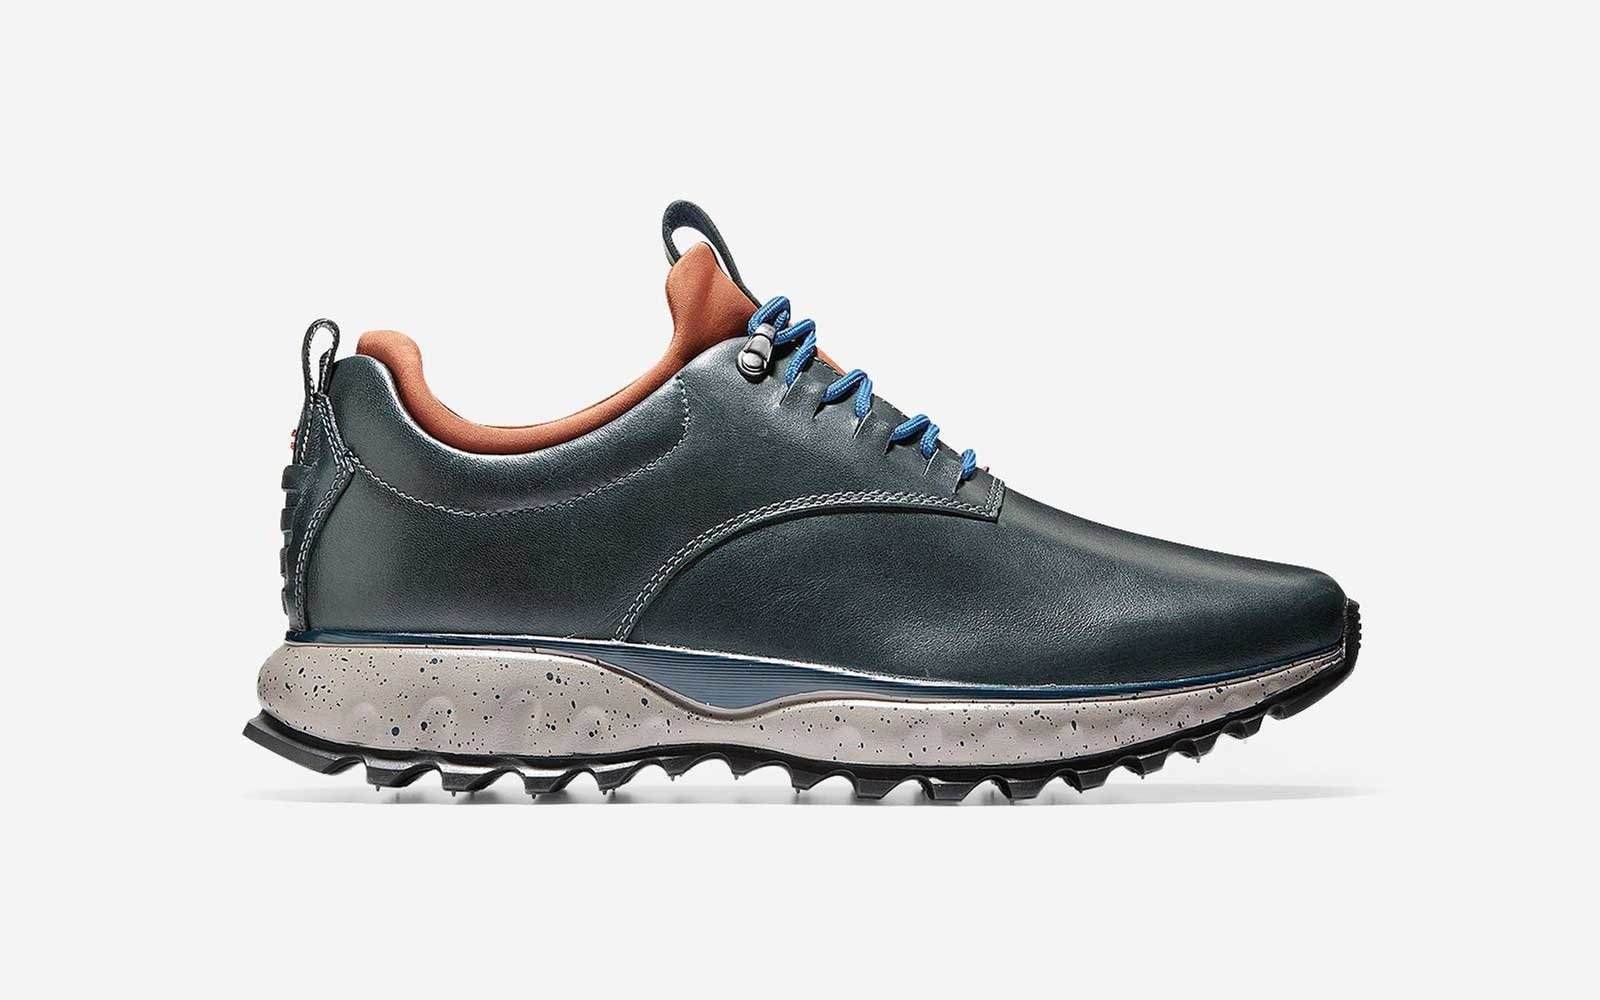 9538ba3b23b The Best Waterproof Walking Shoes for Men | Travel + Leisure